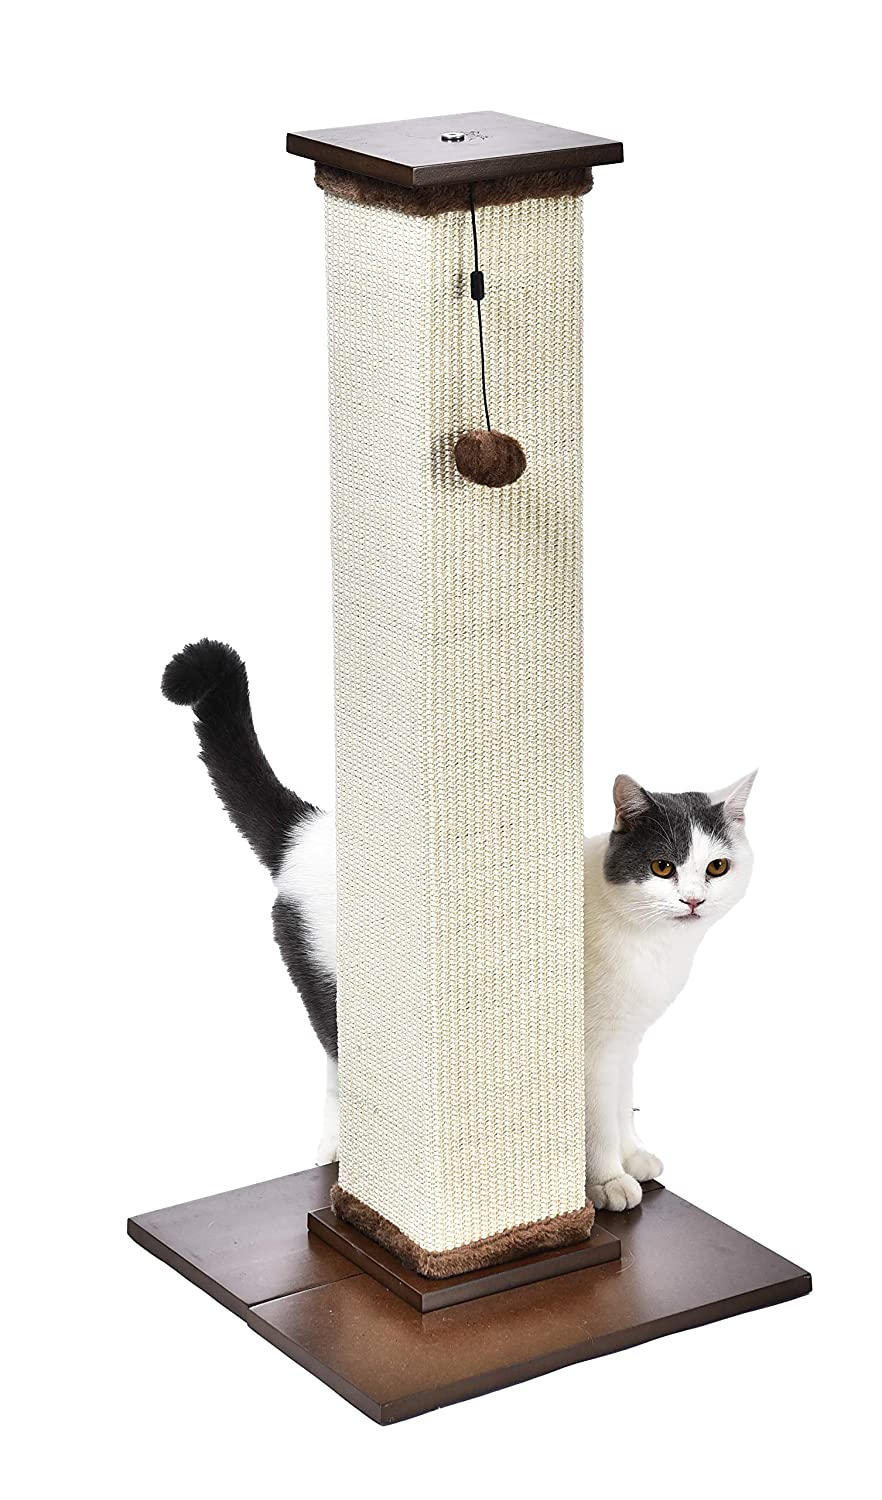 16 x 20 x 16 Inches Beige Basics Cat Condo Tree Tower With Hammock Bed And Scratching Post